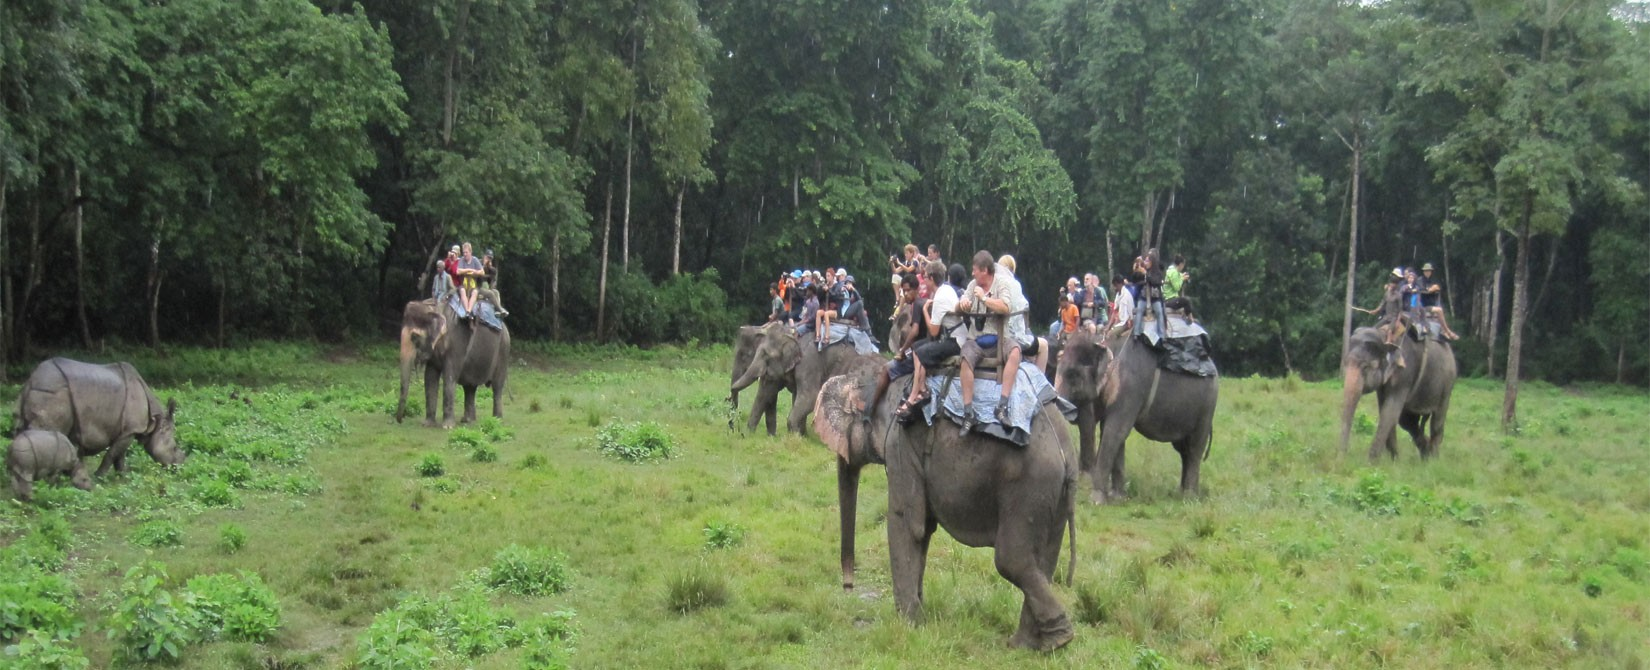 Chitwan wildlife Safari Tour in Nepal